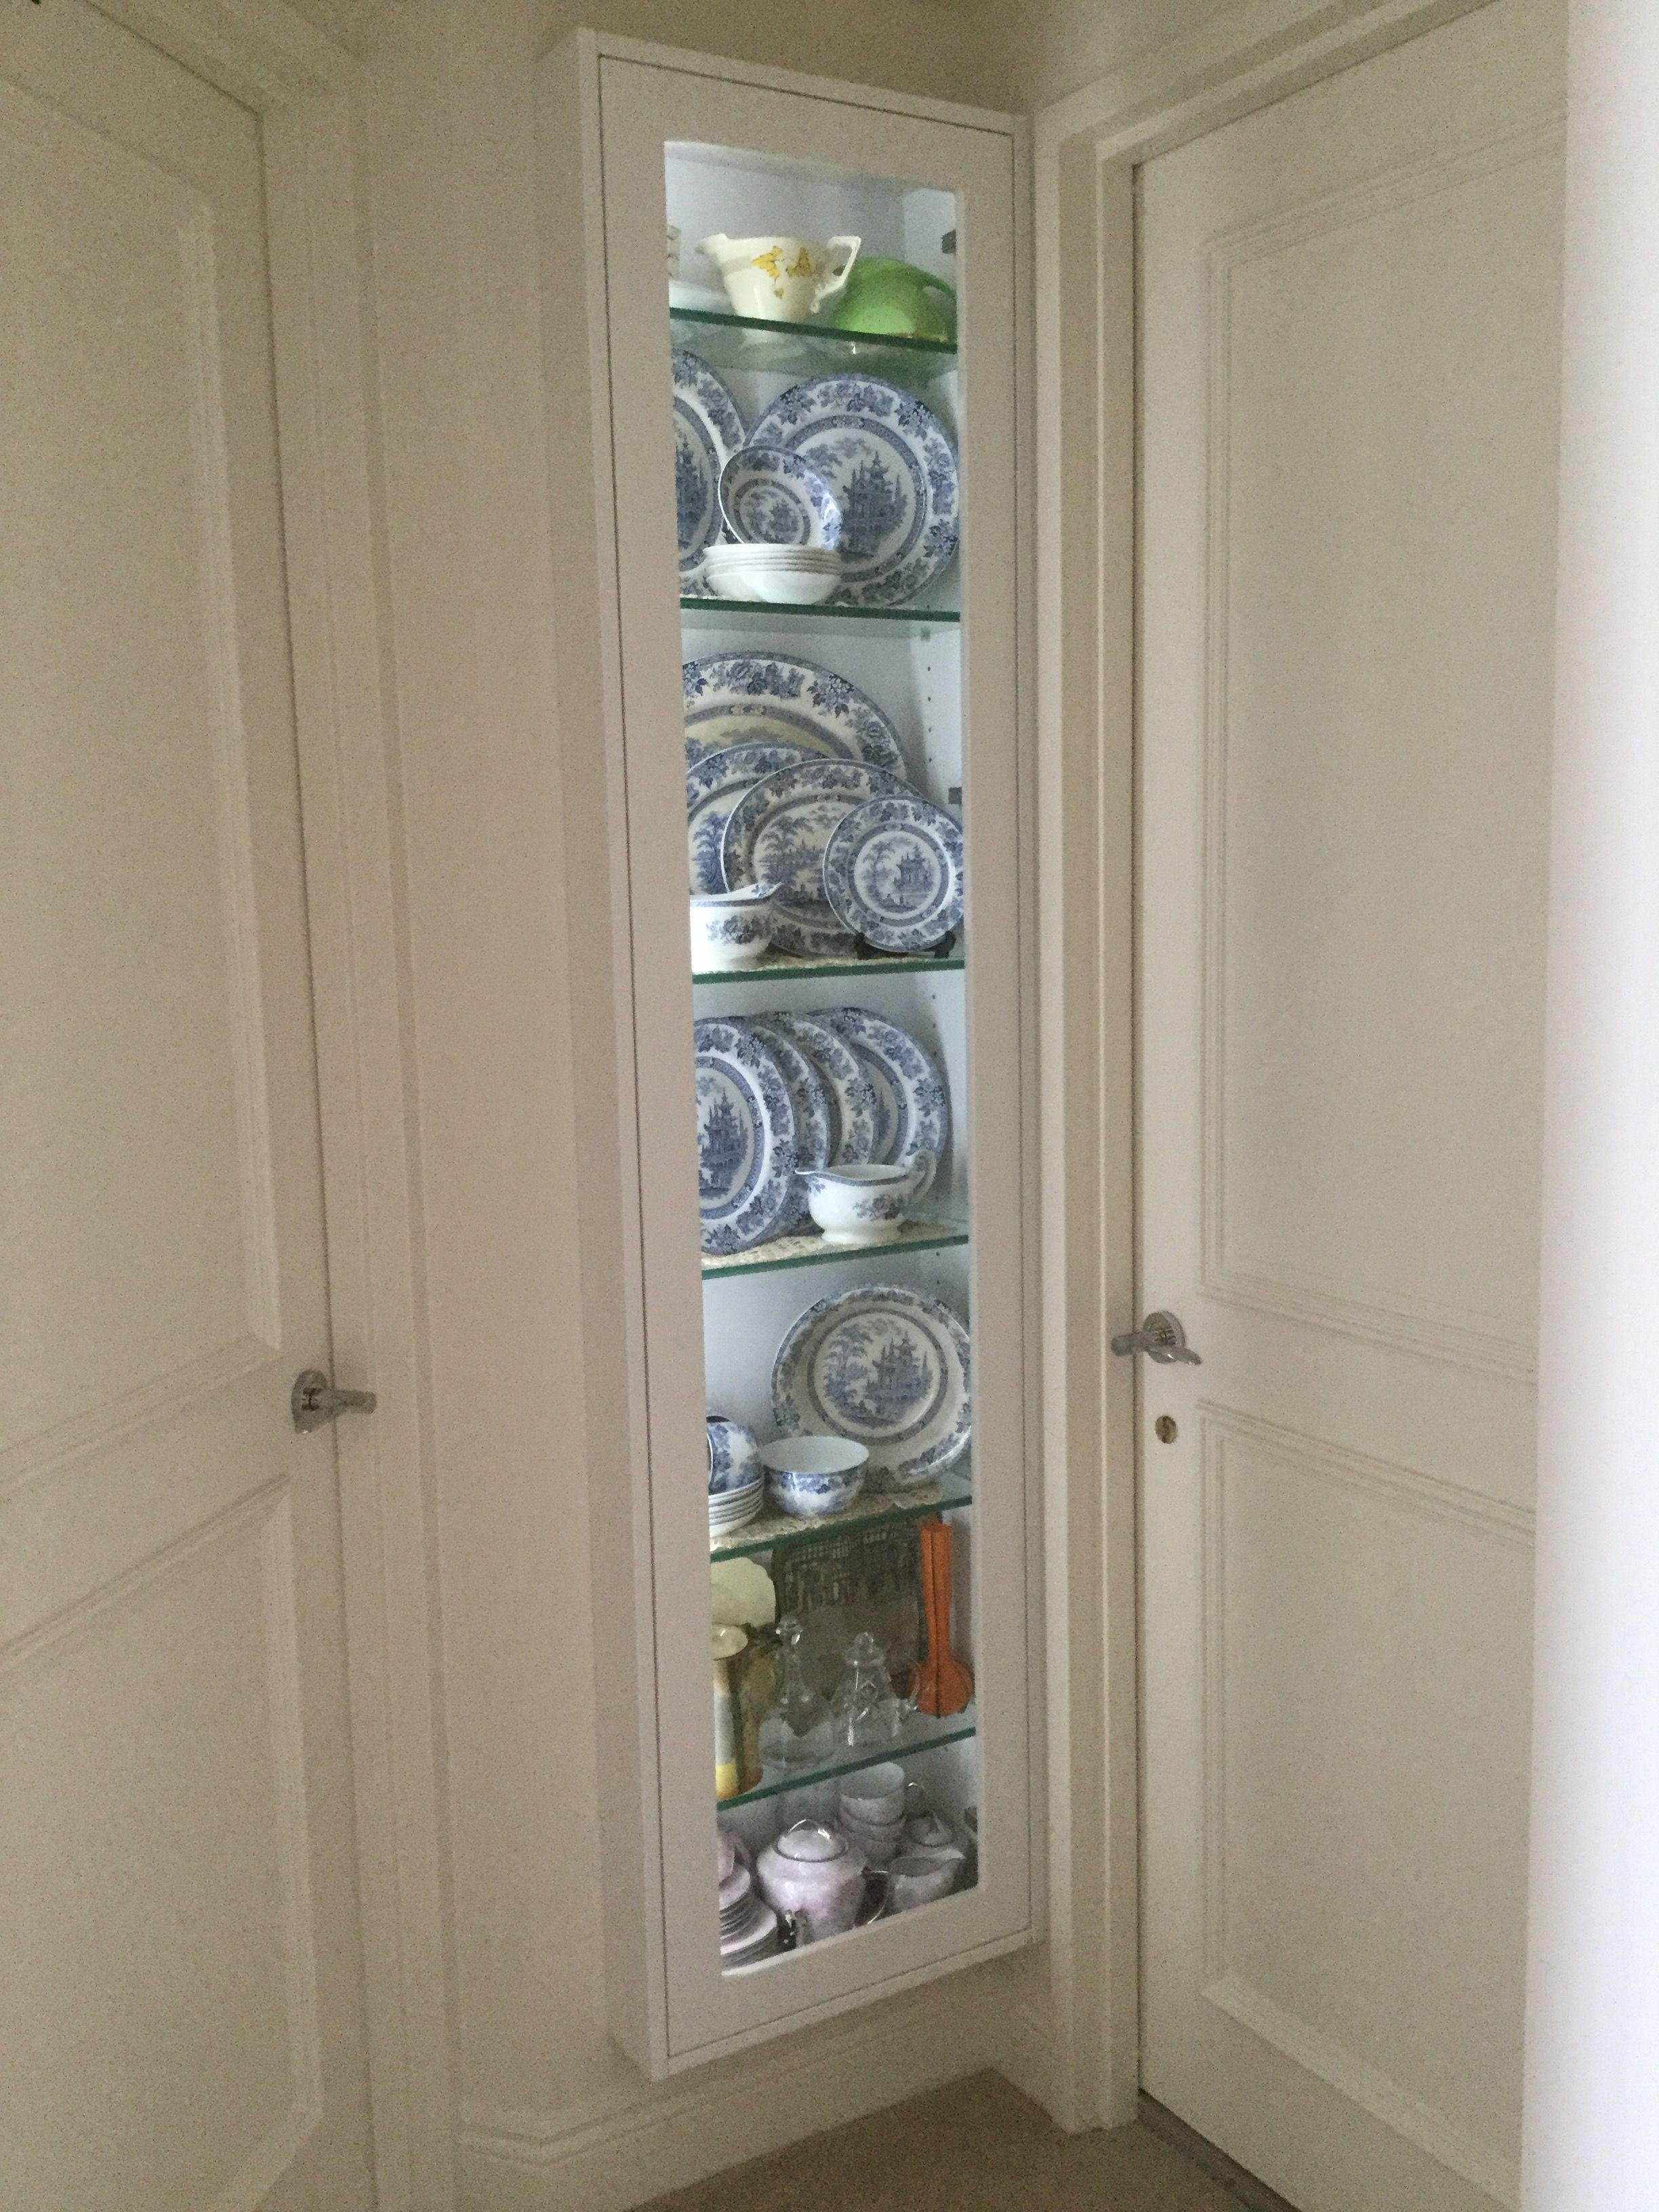 My New China Cabinet For A Small Apartment Built As A Wall Niche Cabinet Between Wall Studs To Display My Small China Cabinet Wall Niche Bungalow Living Rooms